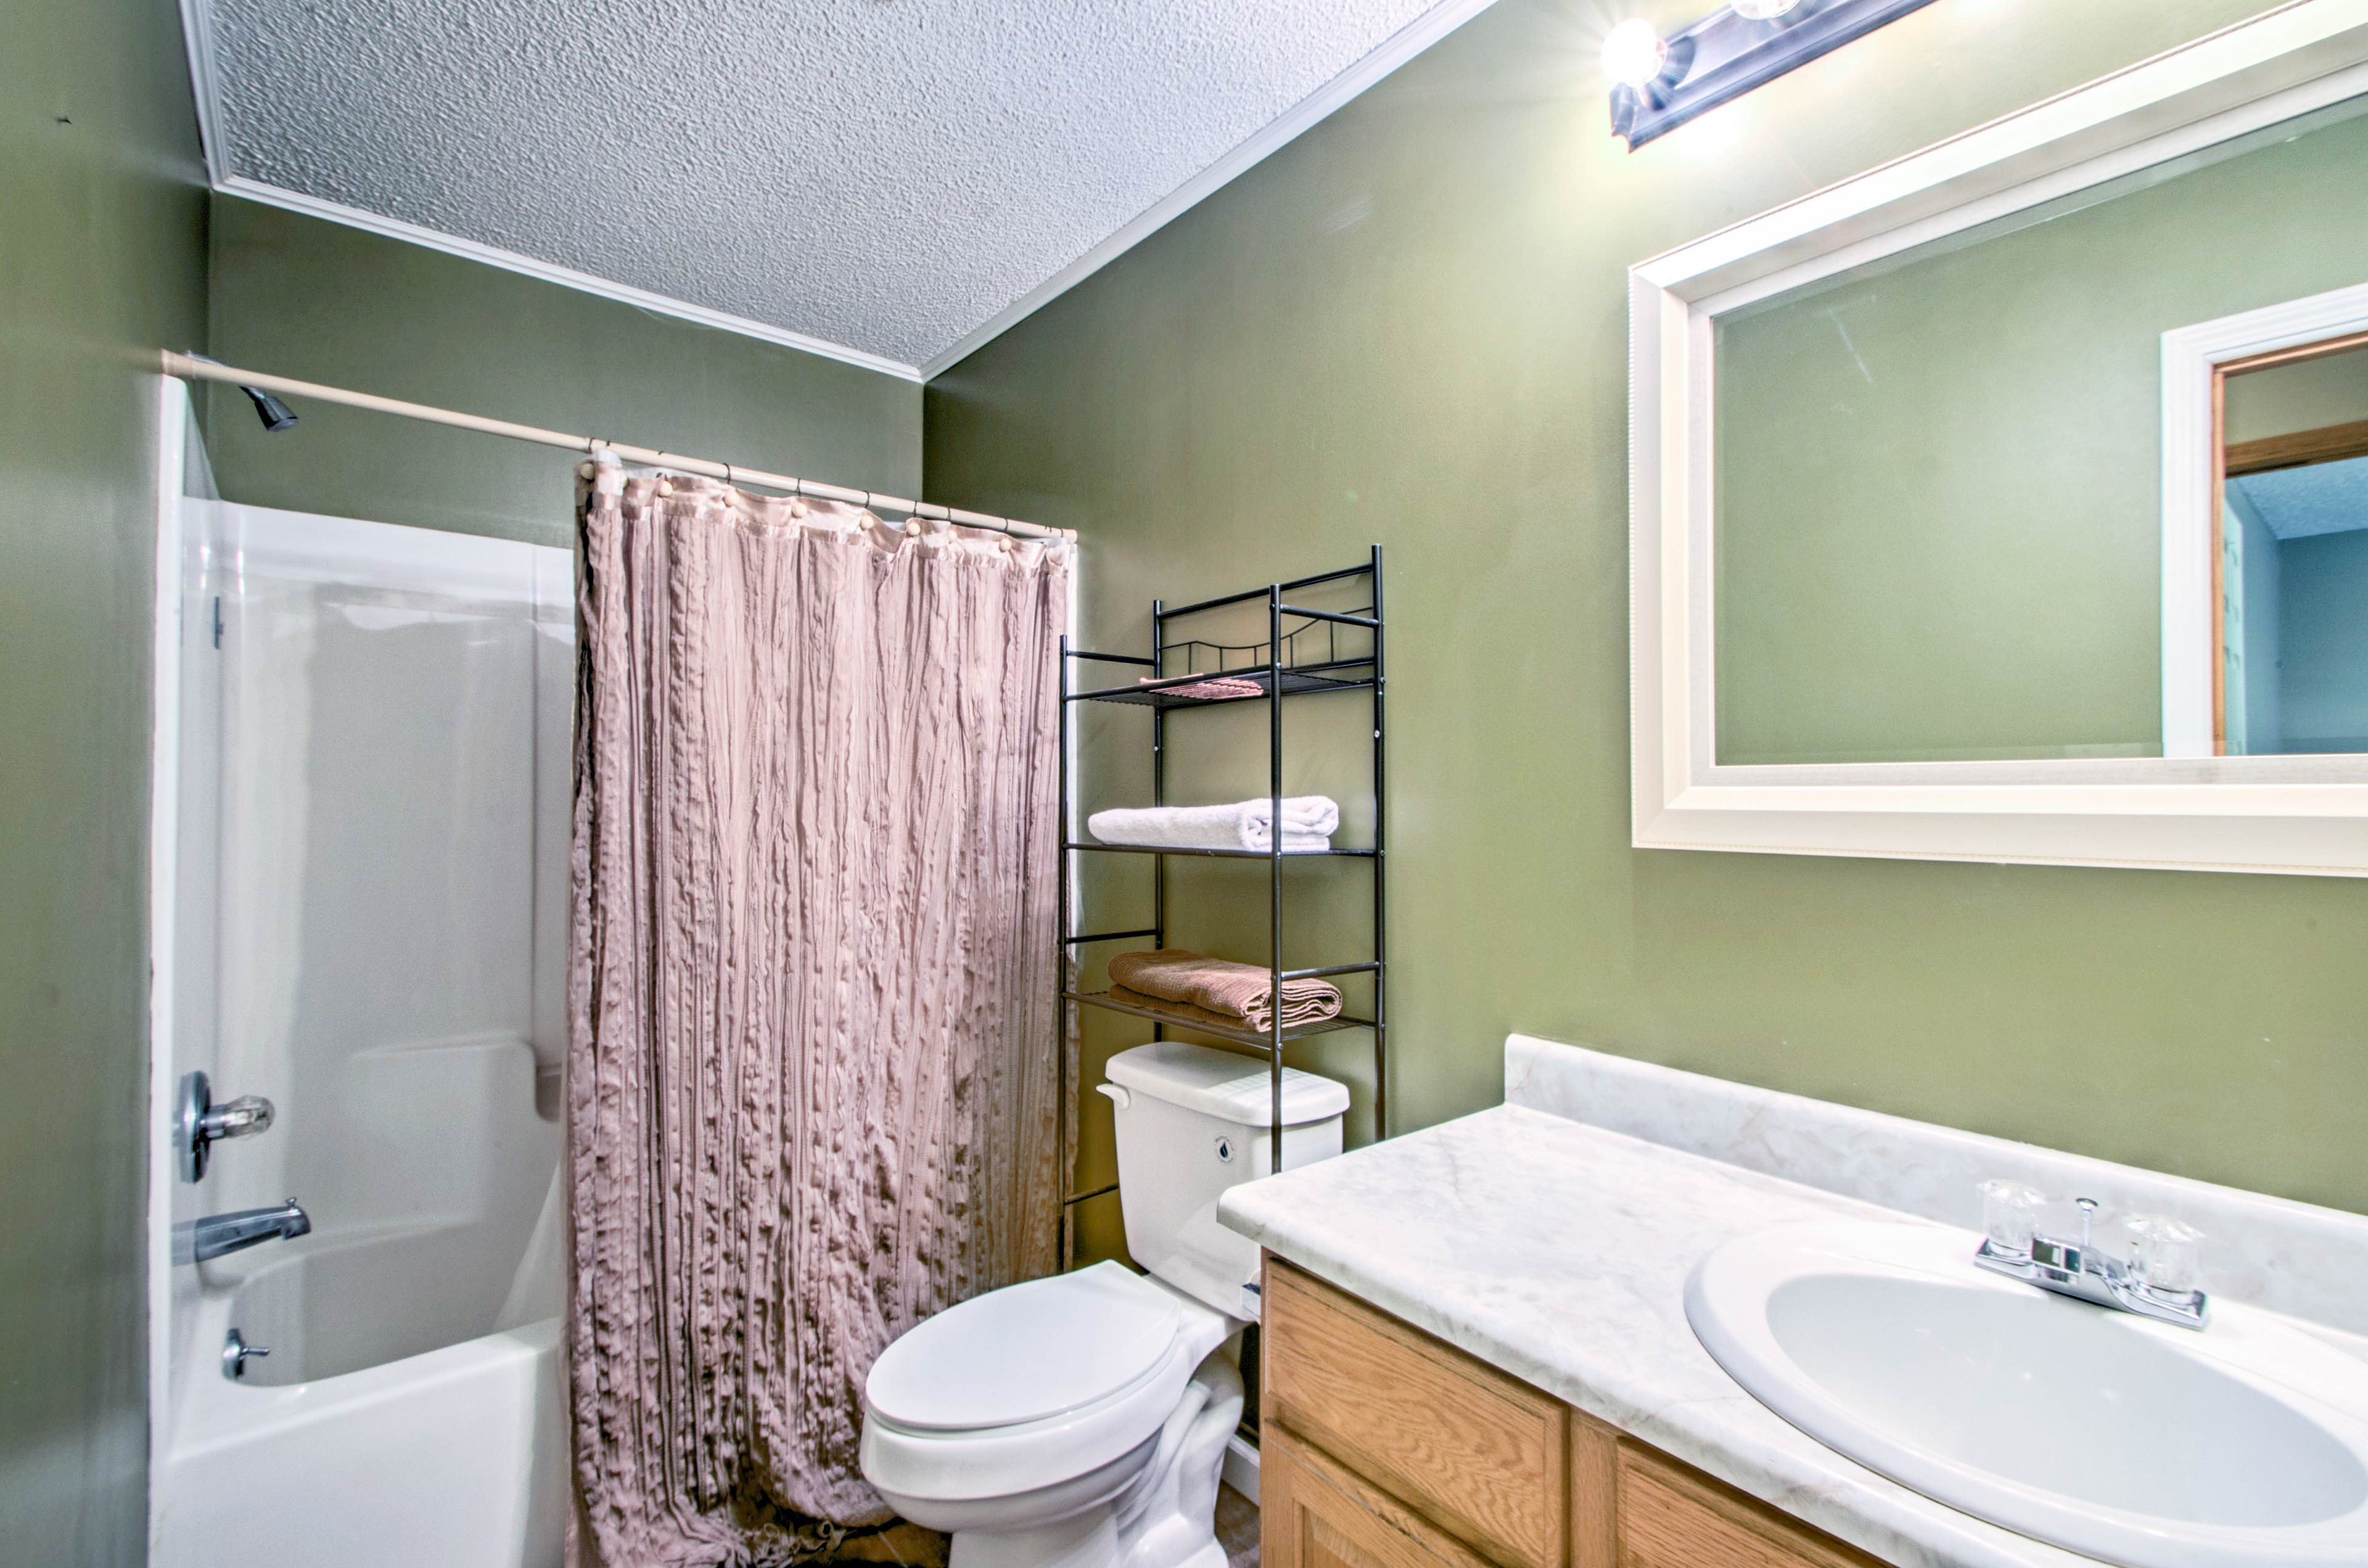 Rinse off the dirt after your hikes in the shower/tub combo of this bathroom.